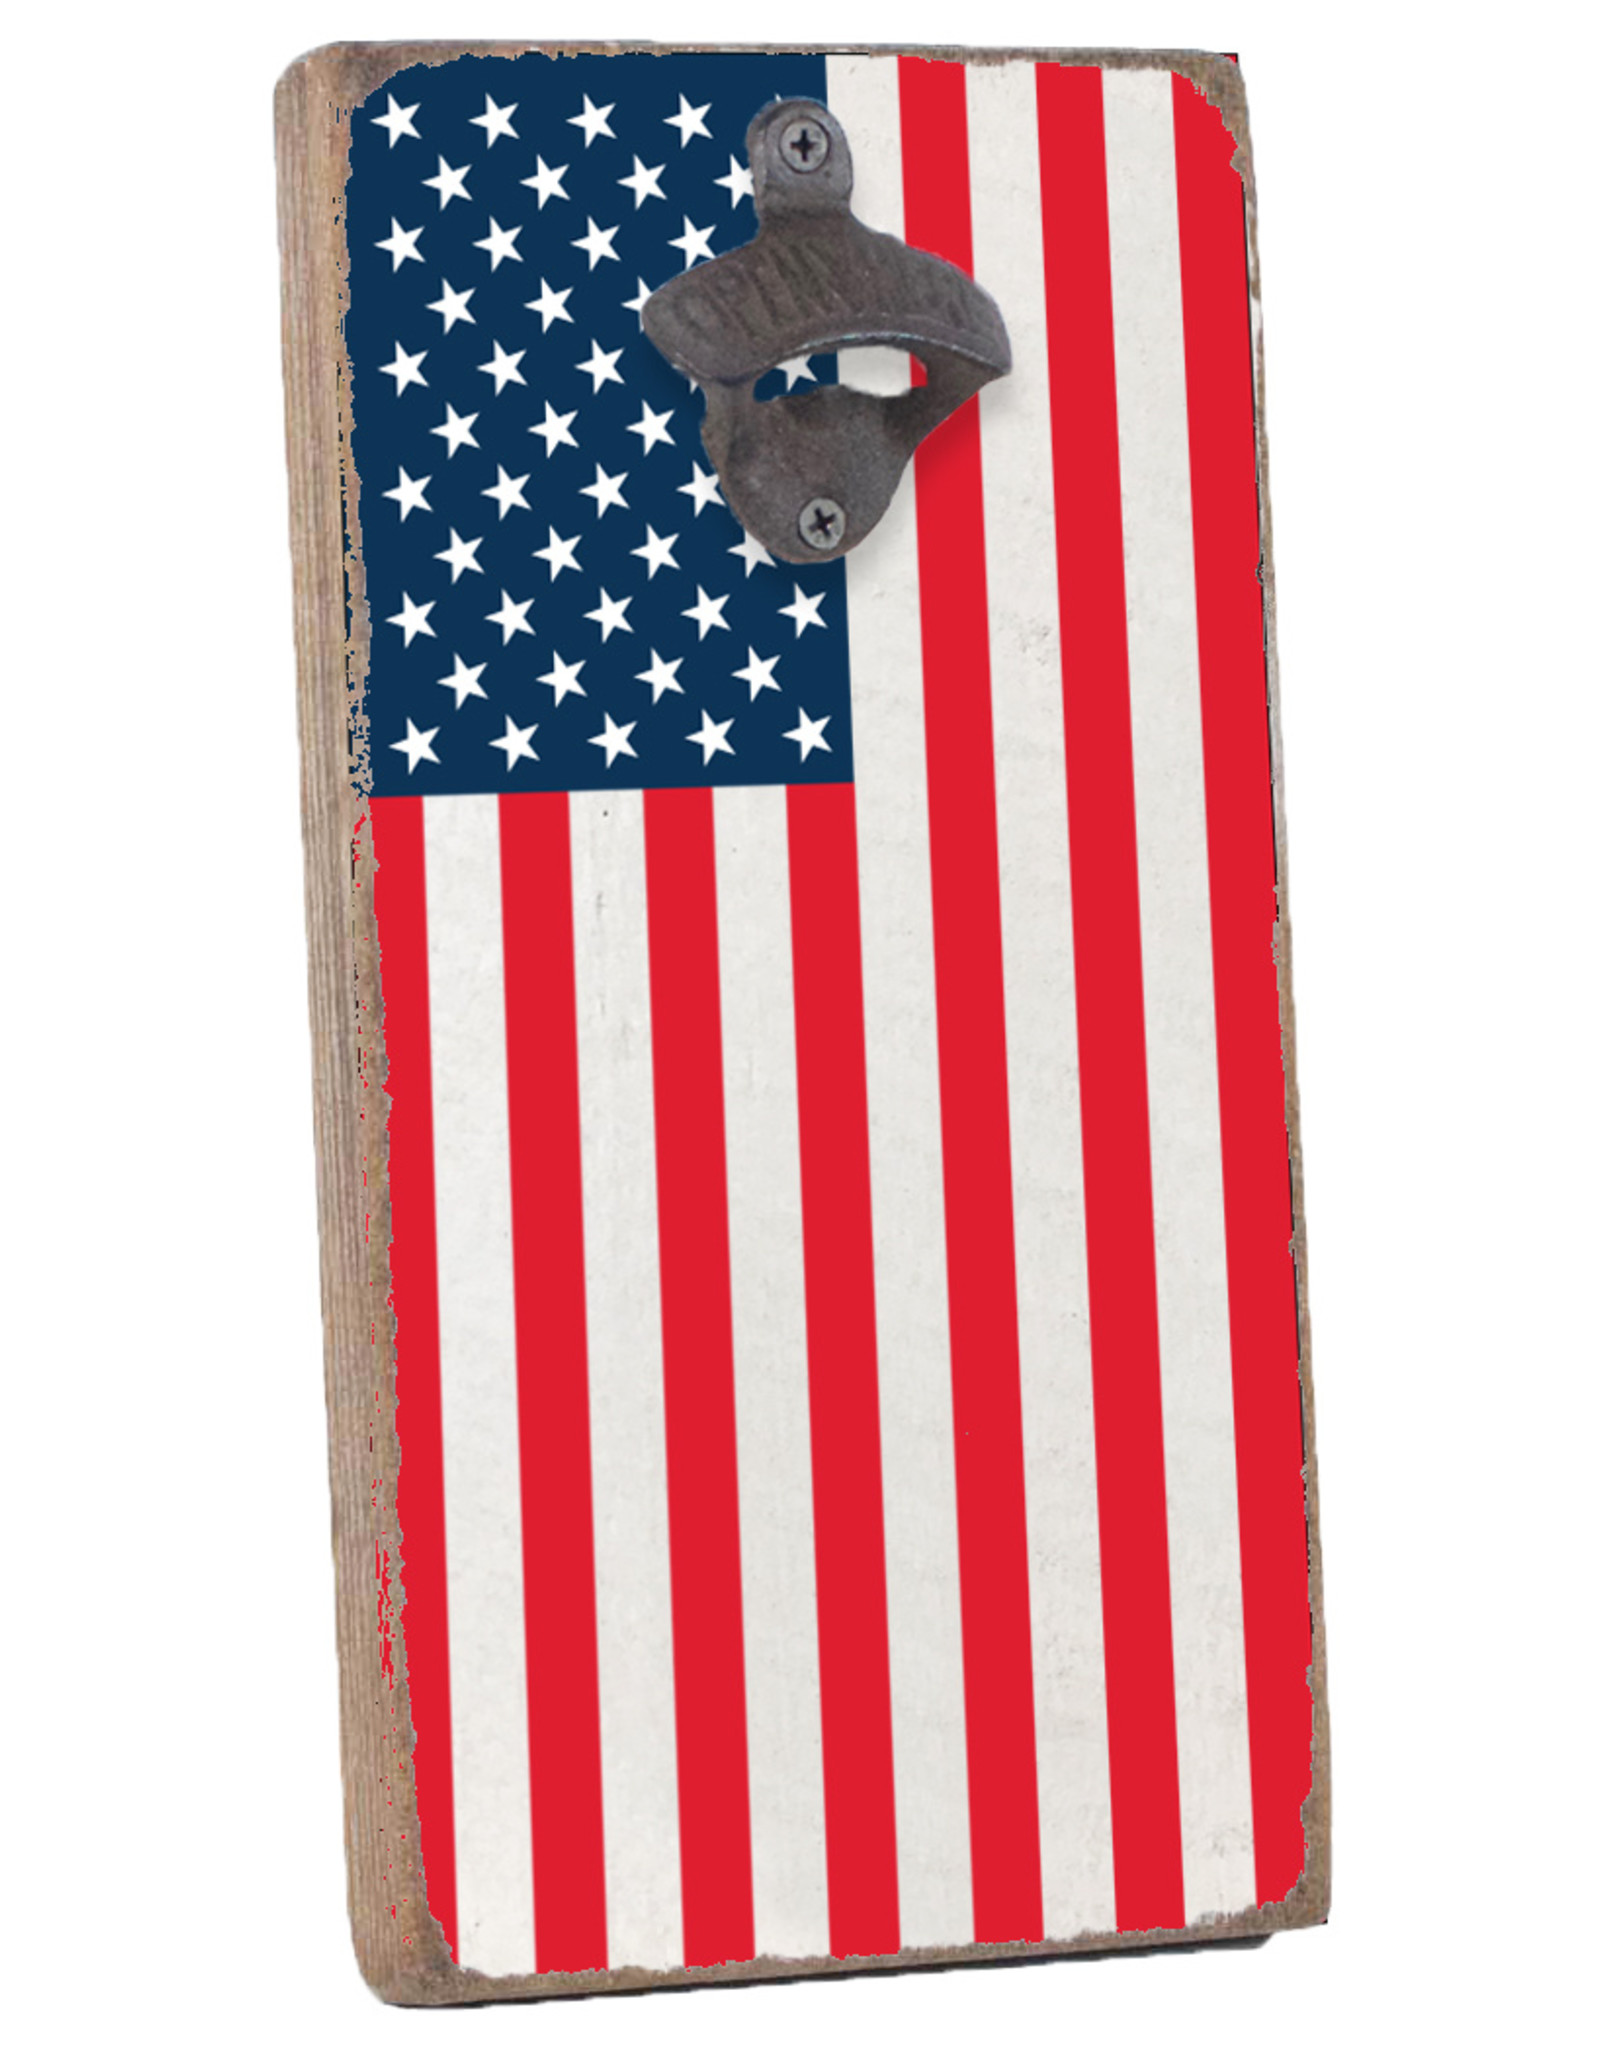 Rustic Marlin Rustic Marlin - American Flag  Bottle Opener